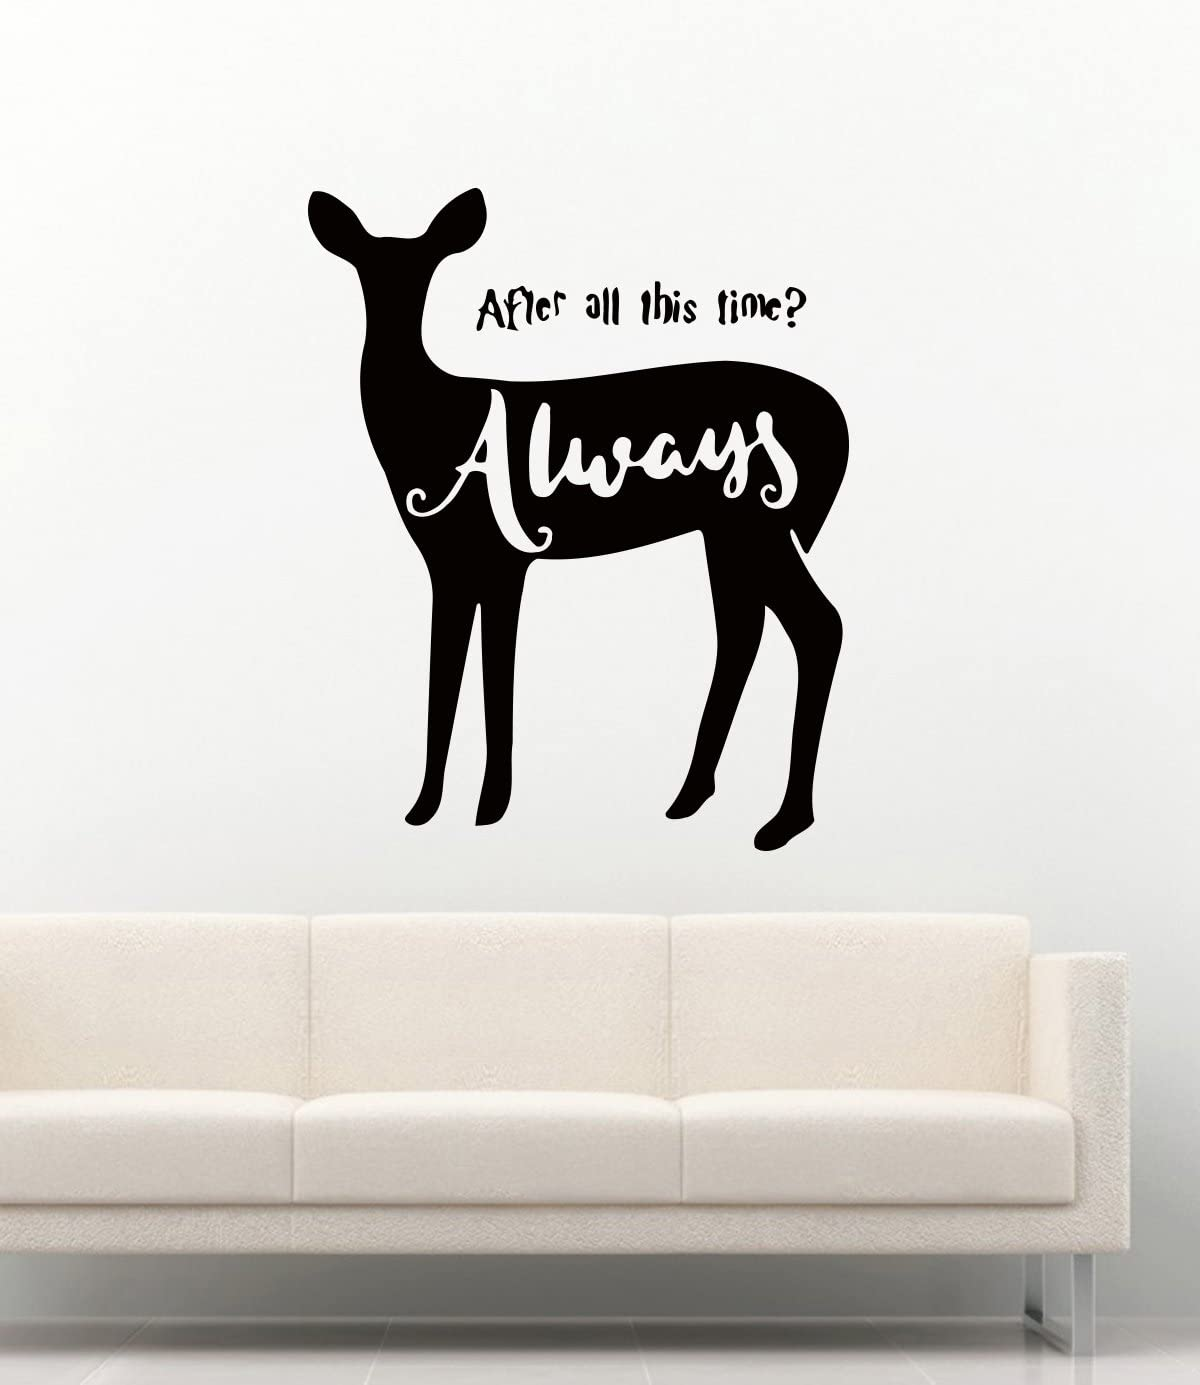 Harry Potter Wall Decals Severus Snape Patronus and Quotes After All This Time Always Decor Stickers Vinyl MK2908